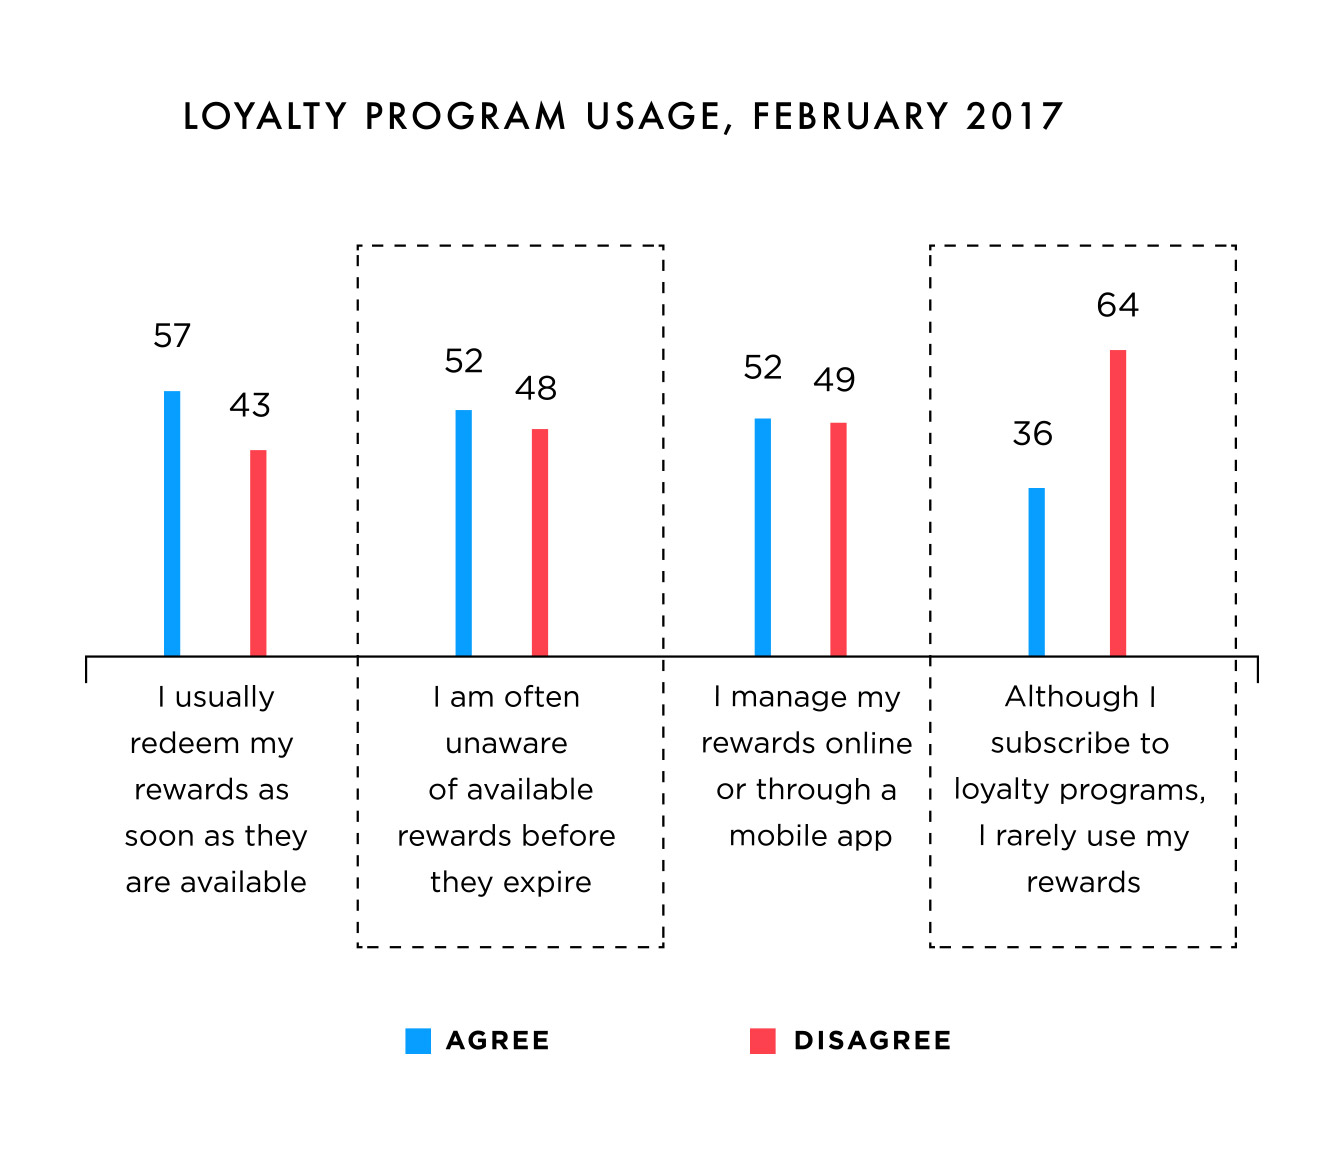 Loyalty program usage, February 2017